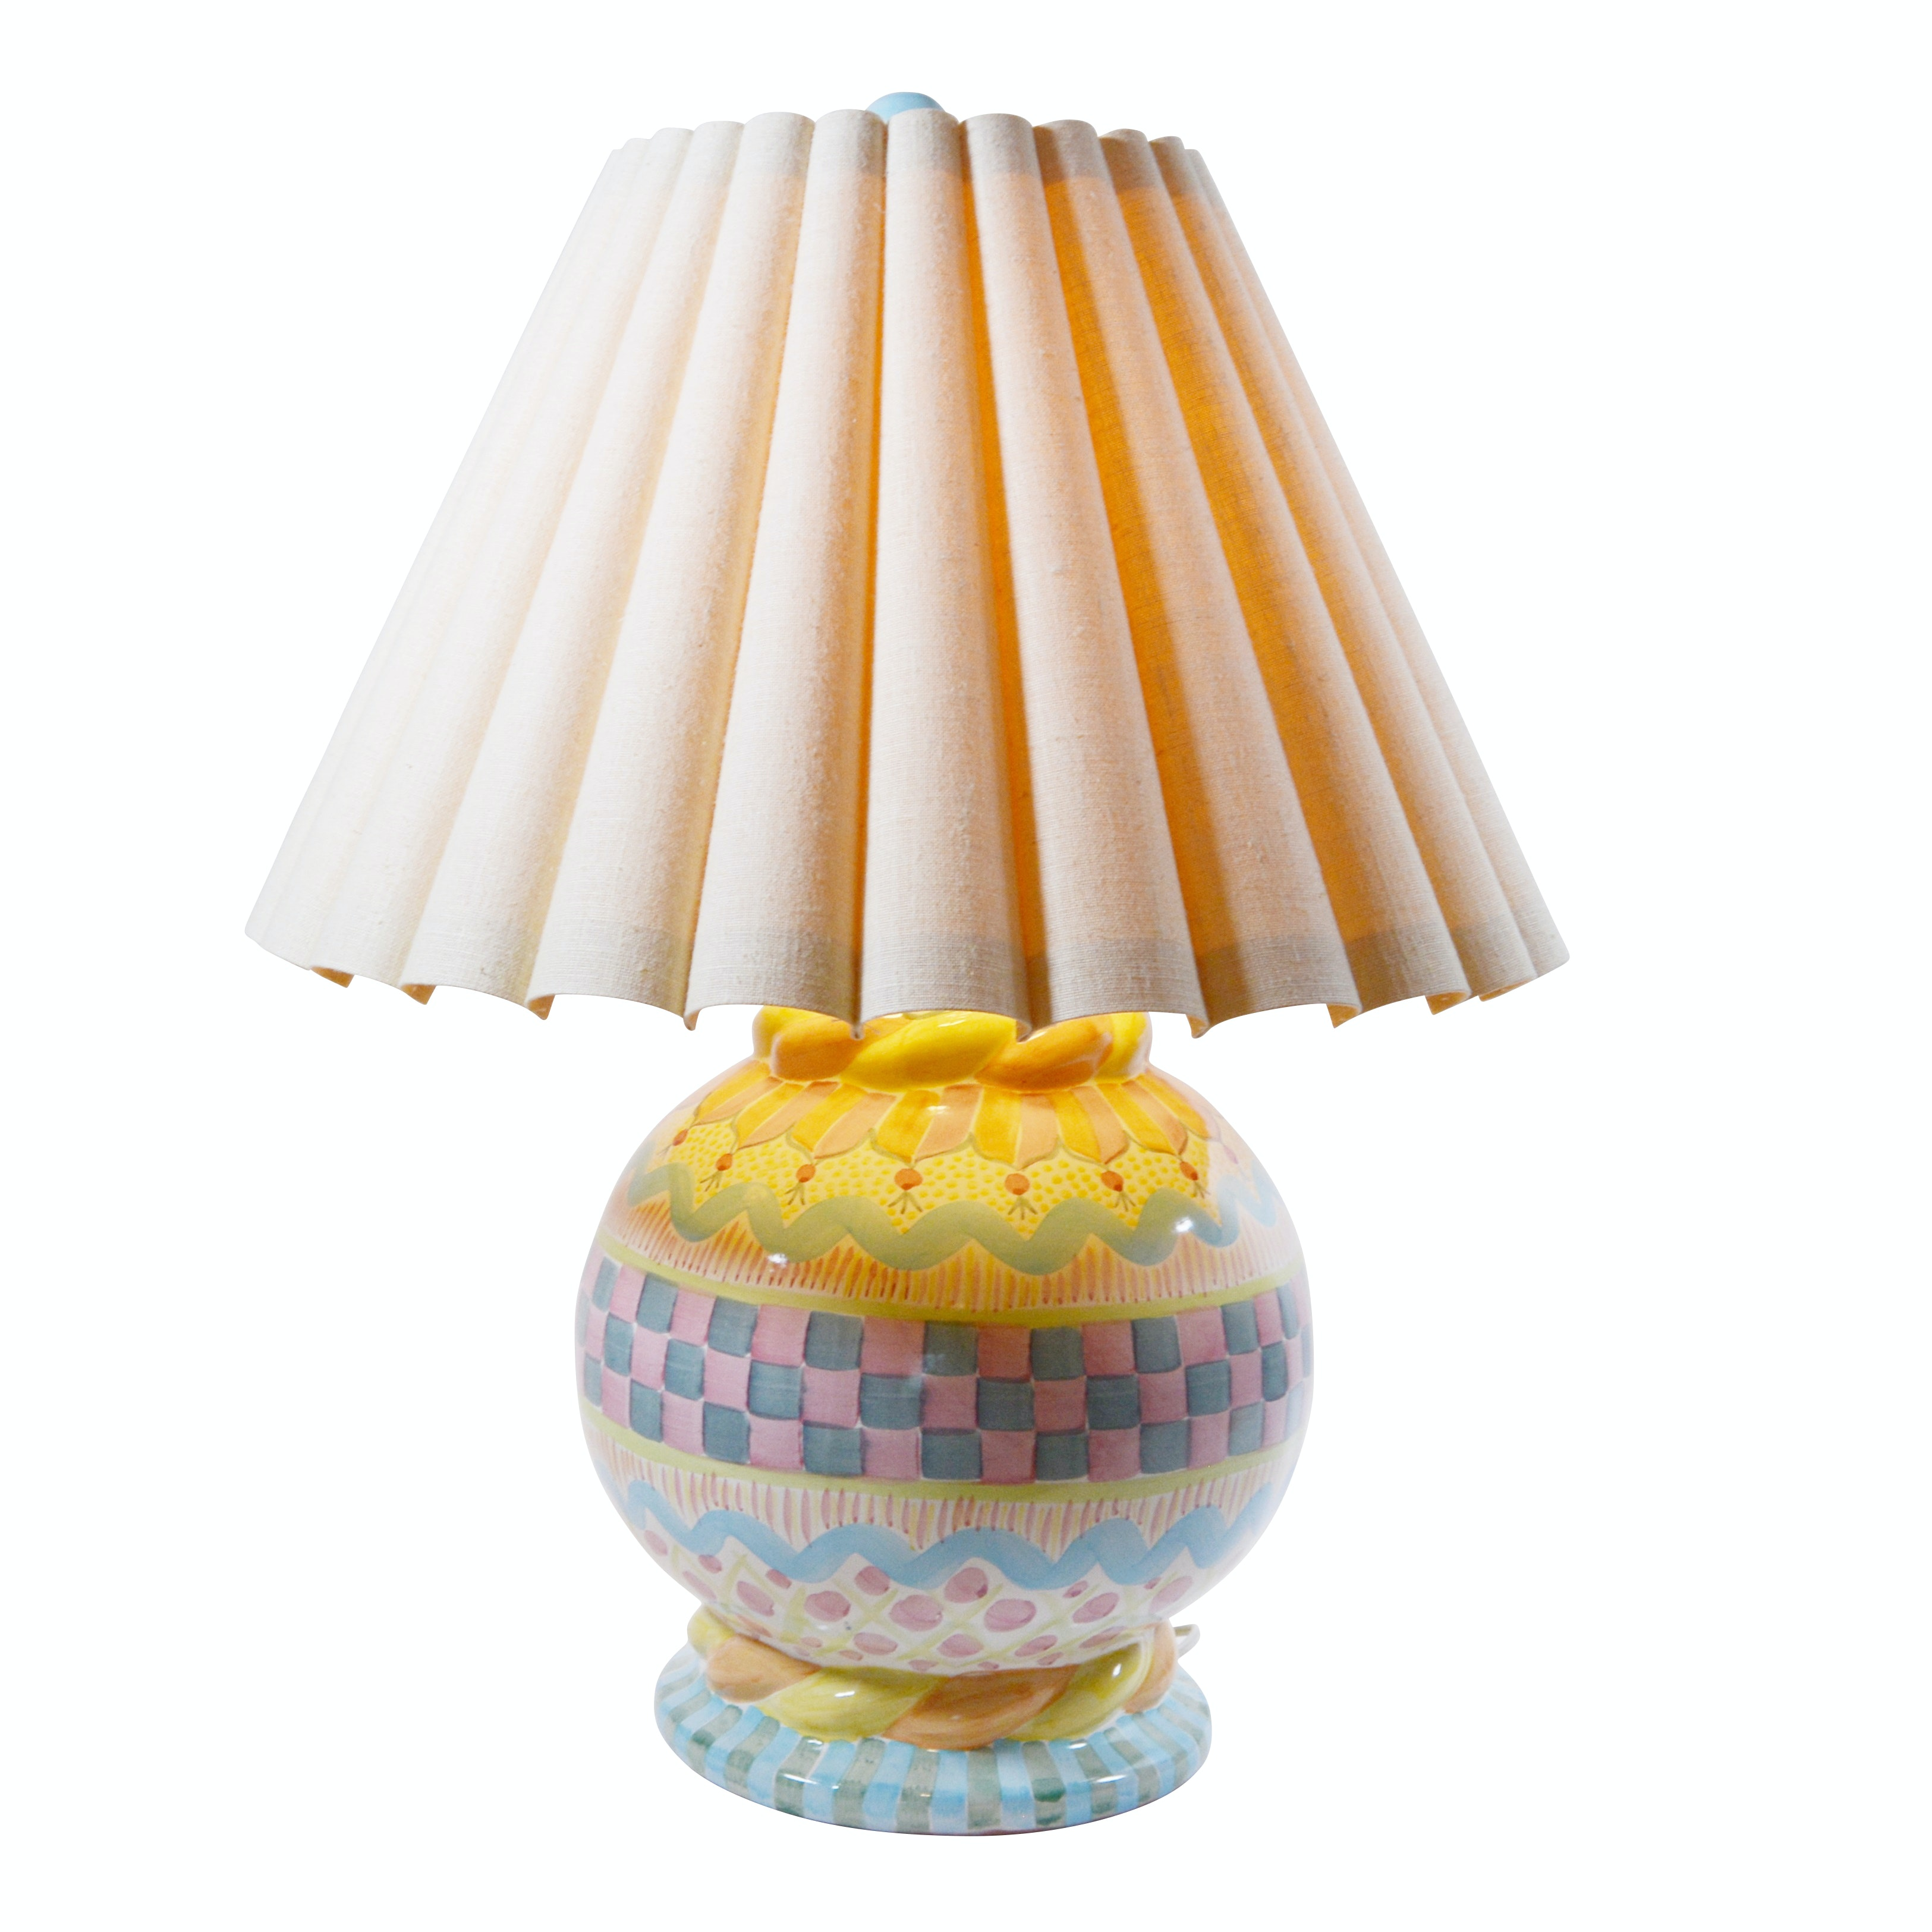 Bulbous Painted Pottery Table Lamp Attributed to MacKenzie-Childs